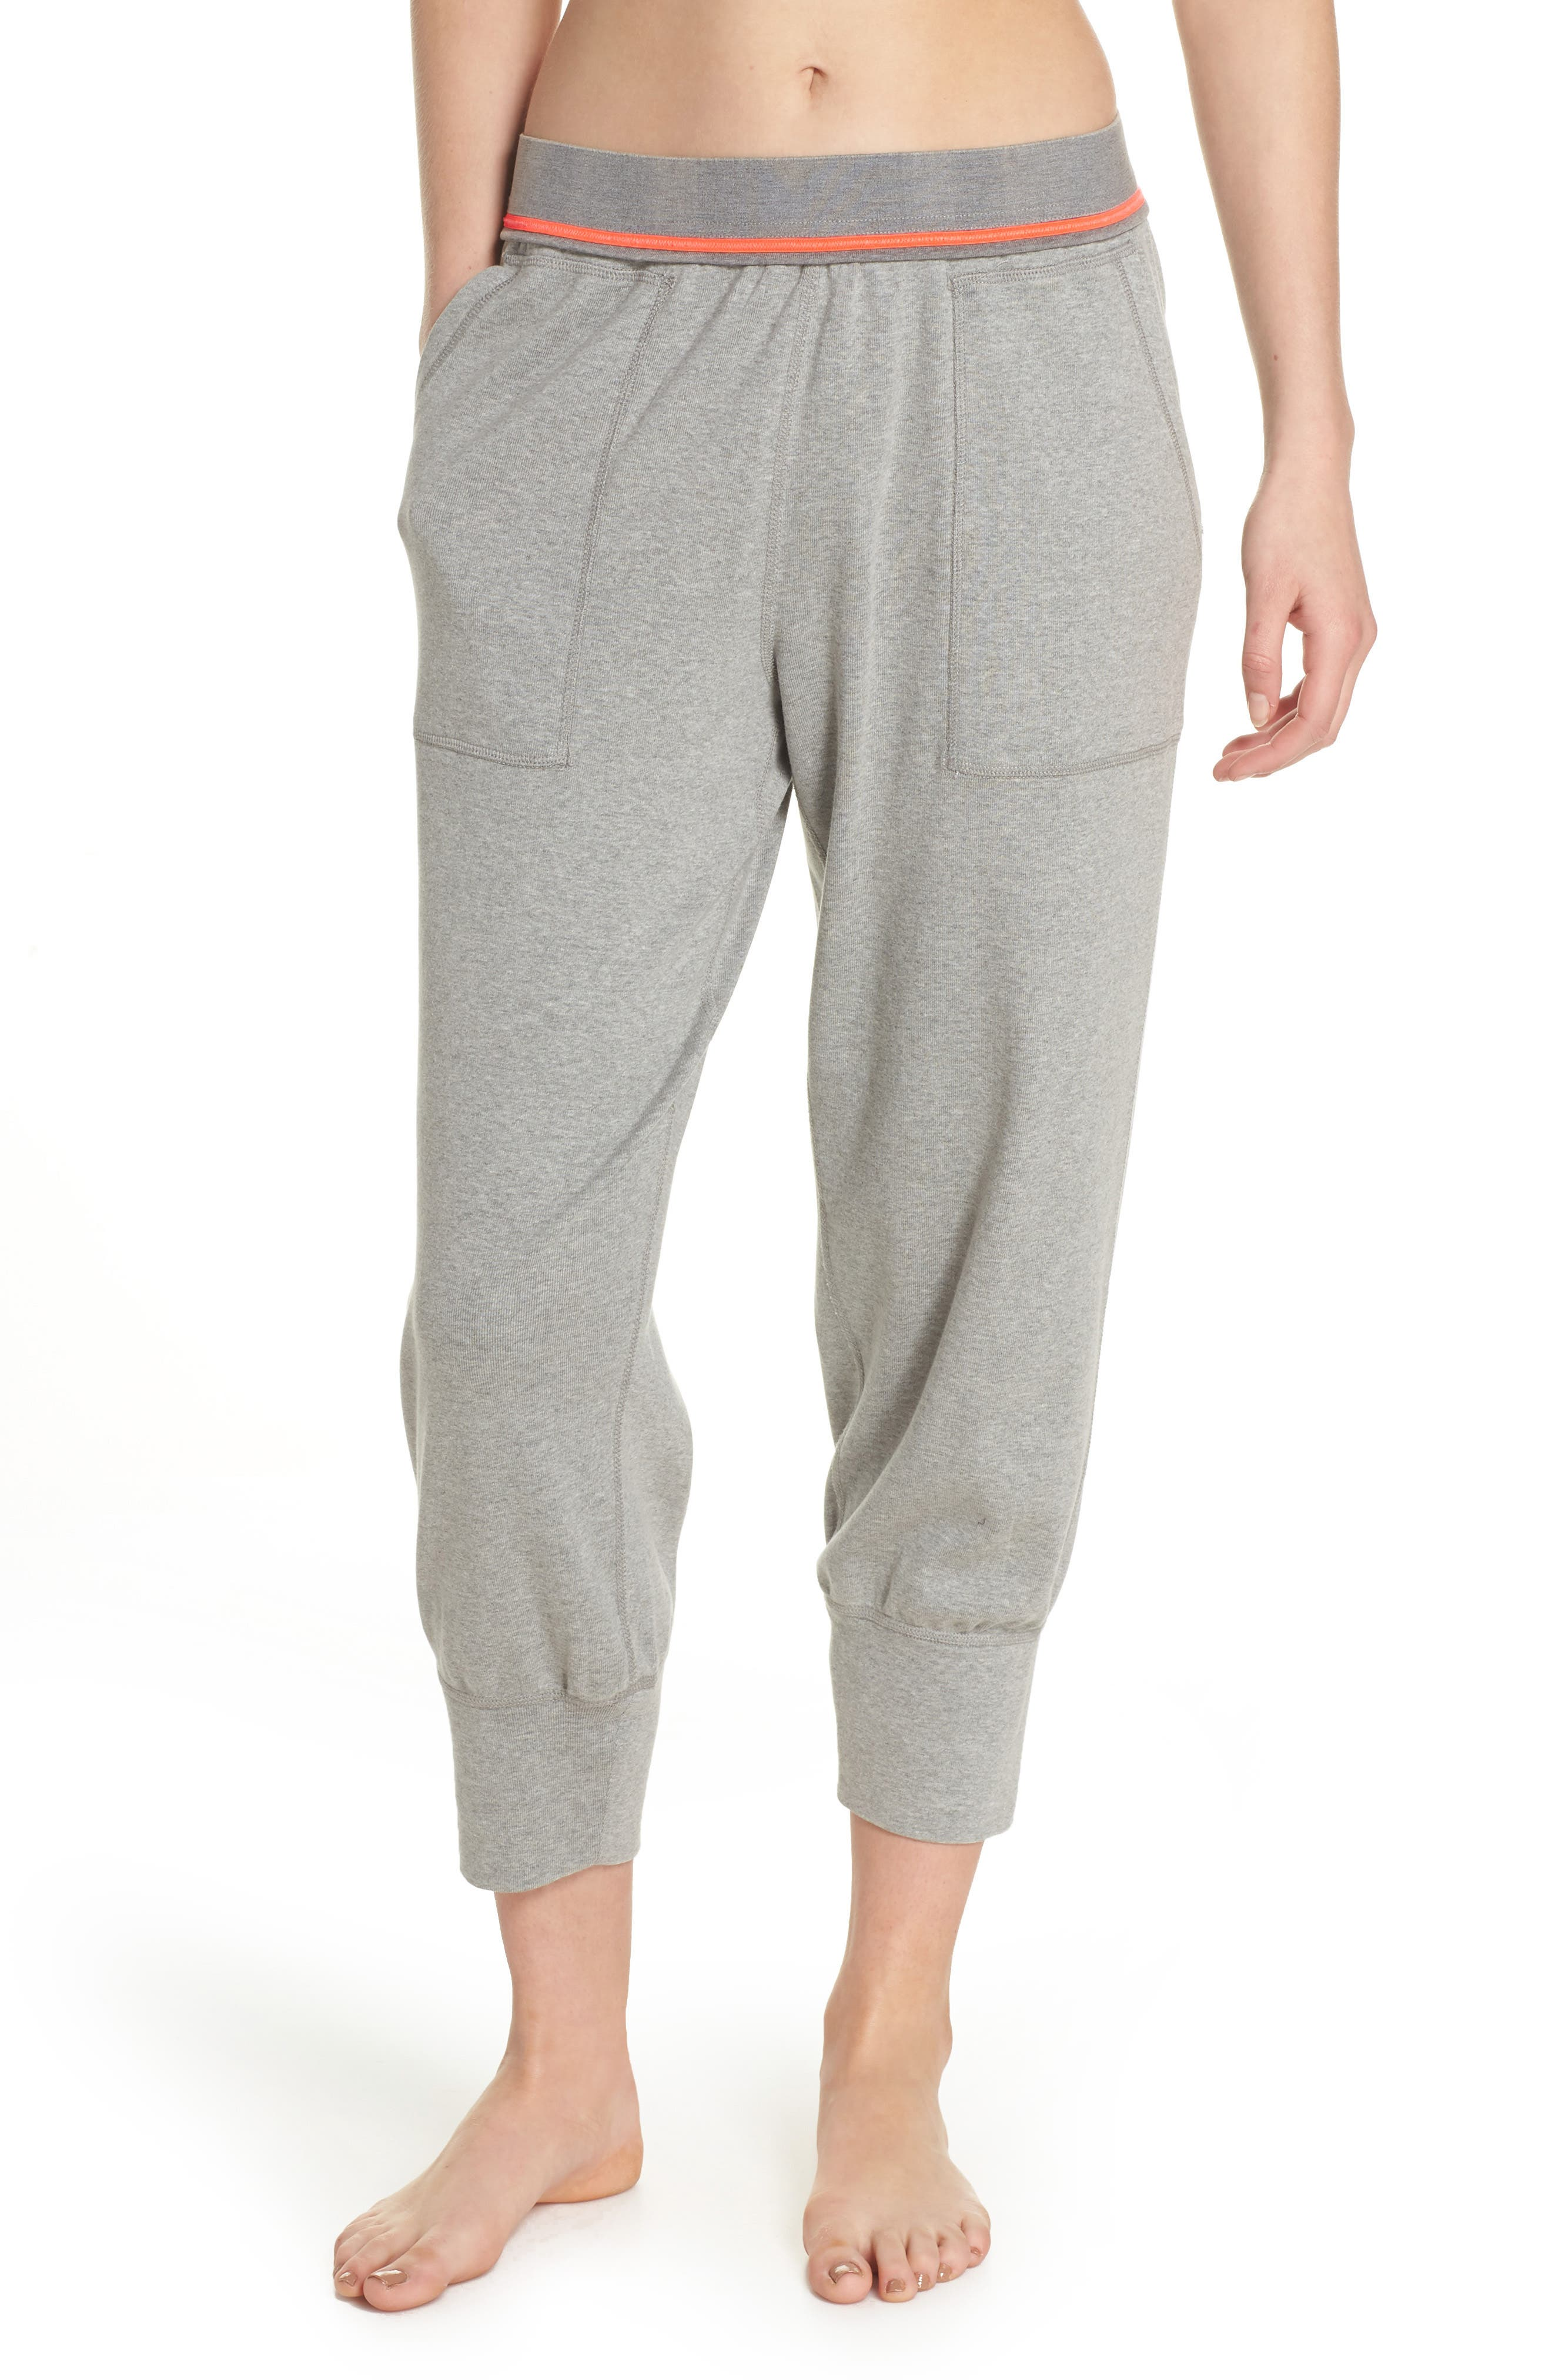 FREE PEOPLE MOVEMENT Jordan Sweatpants, Main, color, 030